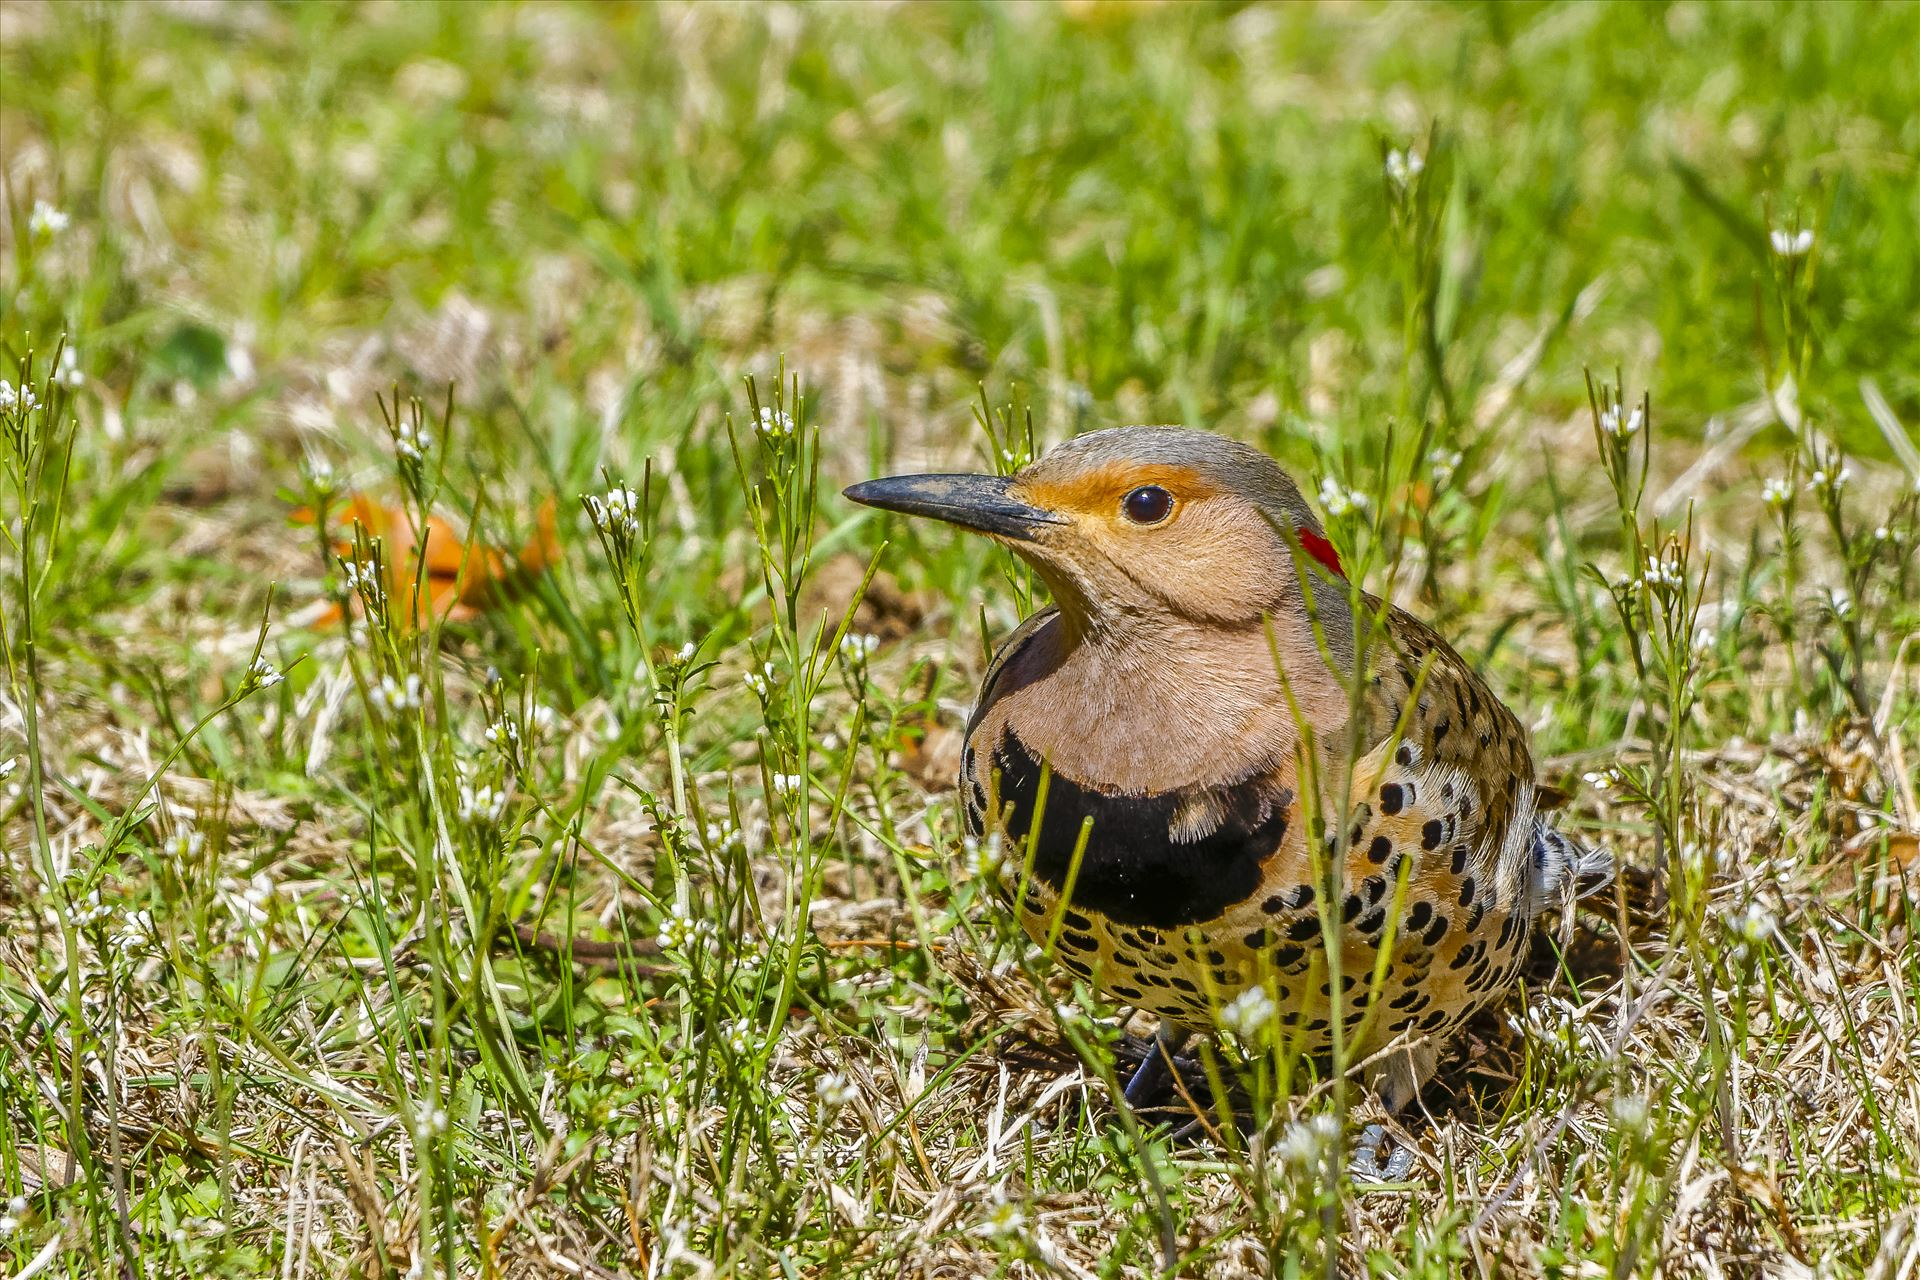 Grounded Northern Flicker - Flicker Feeding On Ground by Buckmaster